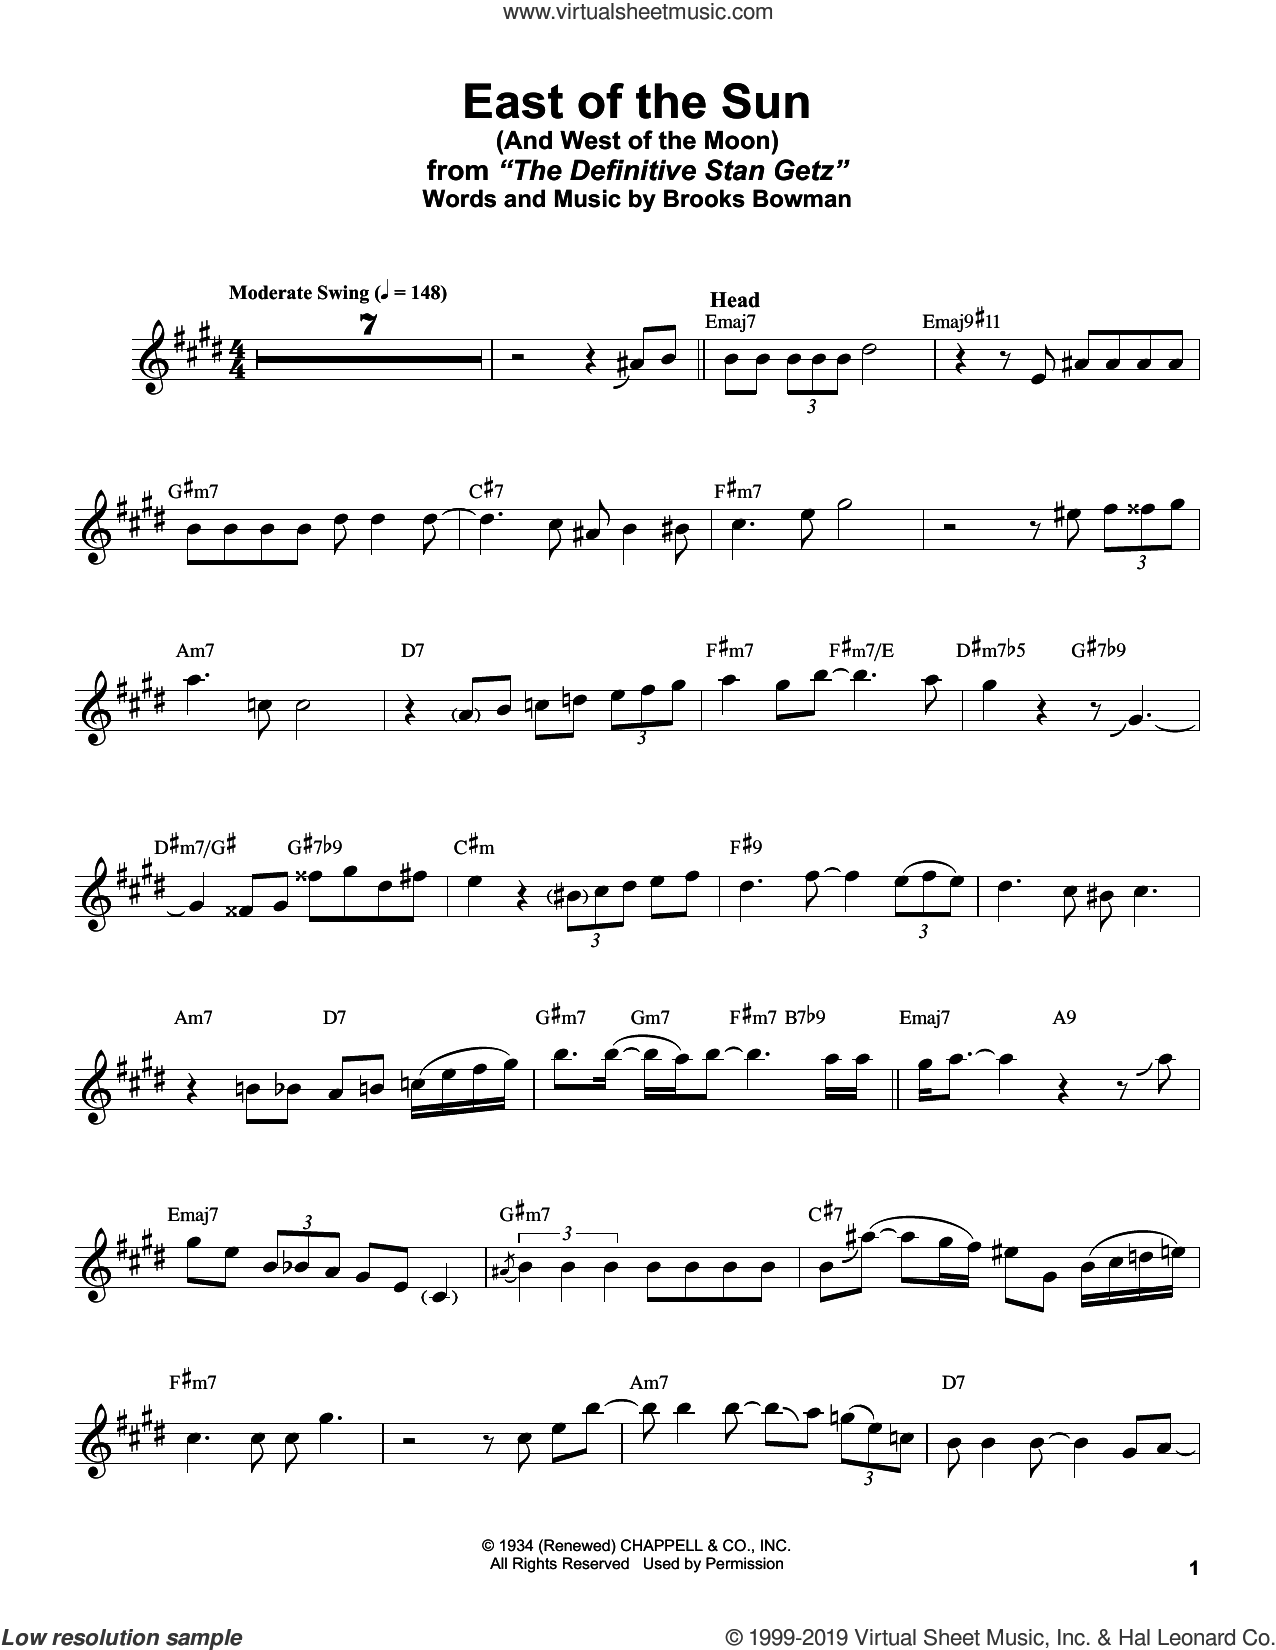 East Of The Sun (And West Of The Moon) sheet music for alto saxophone (transcription) by Stan Getz and Brooks Bowman, intermediate skill level